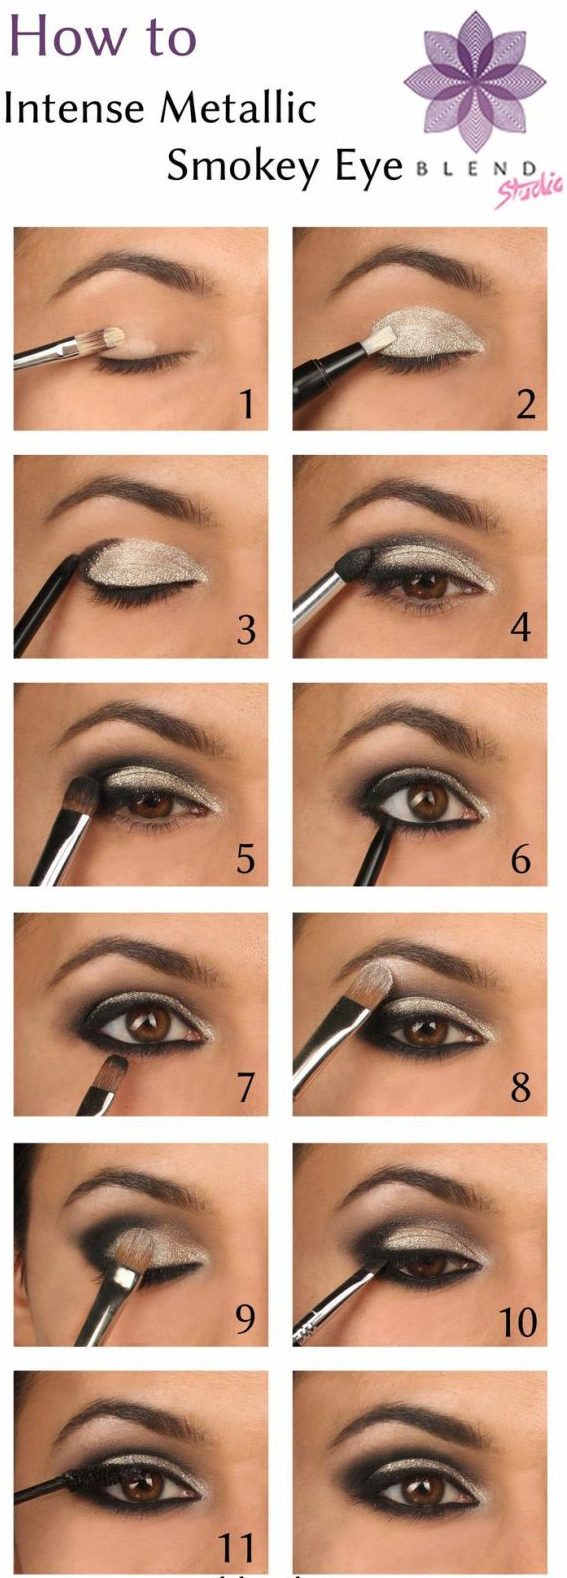 One Has To Absorb Order To Induce An Intense Gold Smoky Eye Makeup You  Recognize You Would Like Black And Gray Shades, Slightly Little Bit Of  Glitter